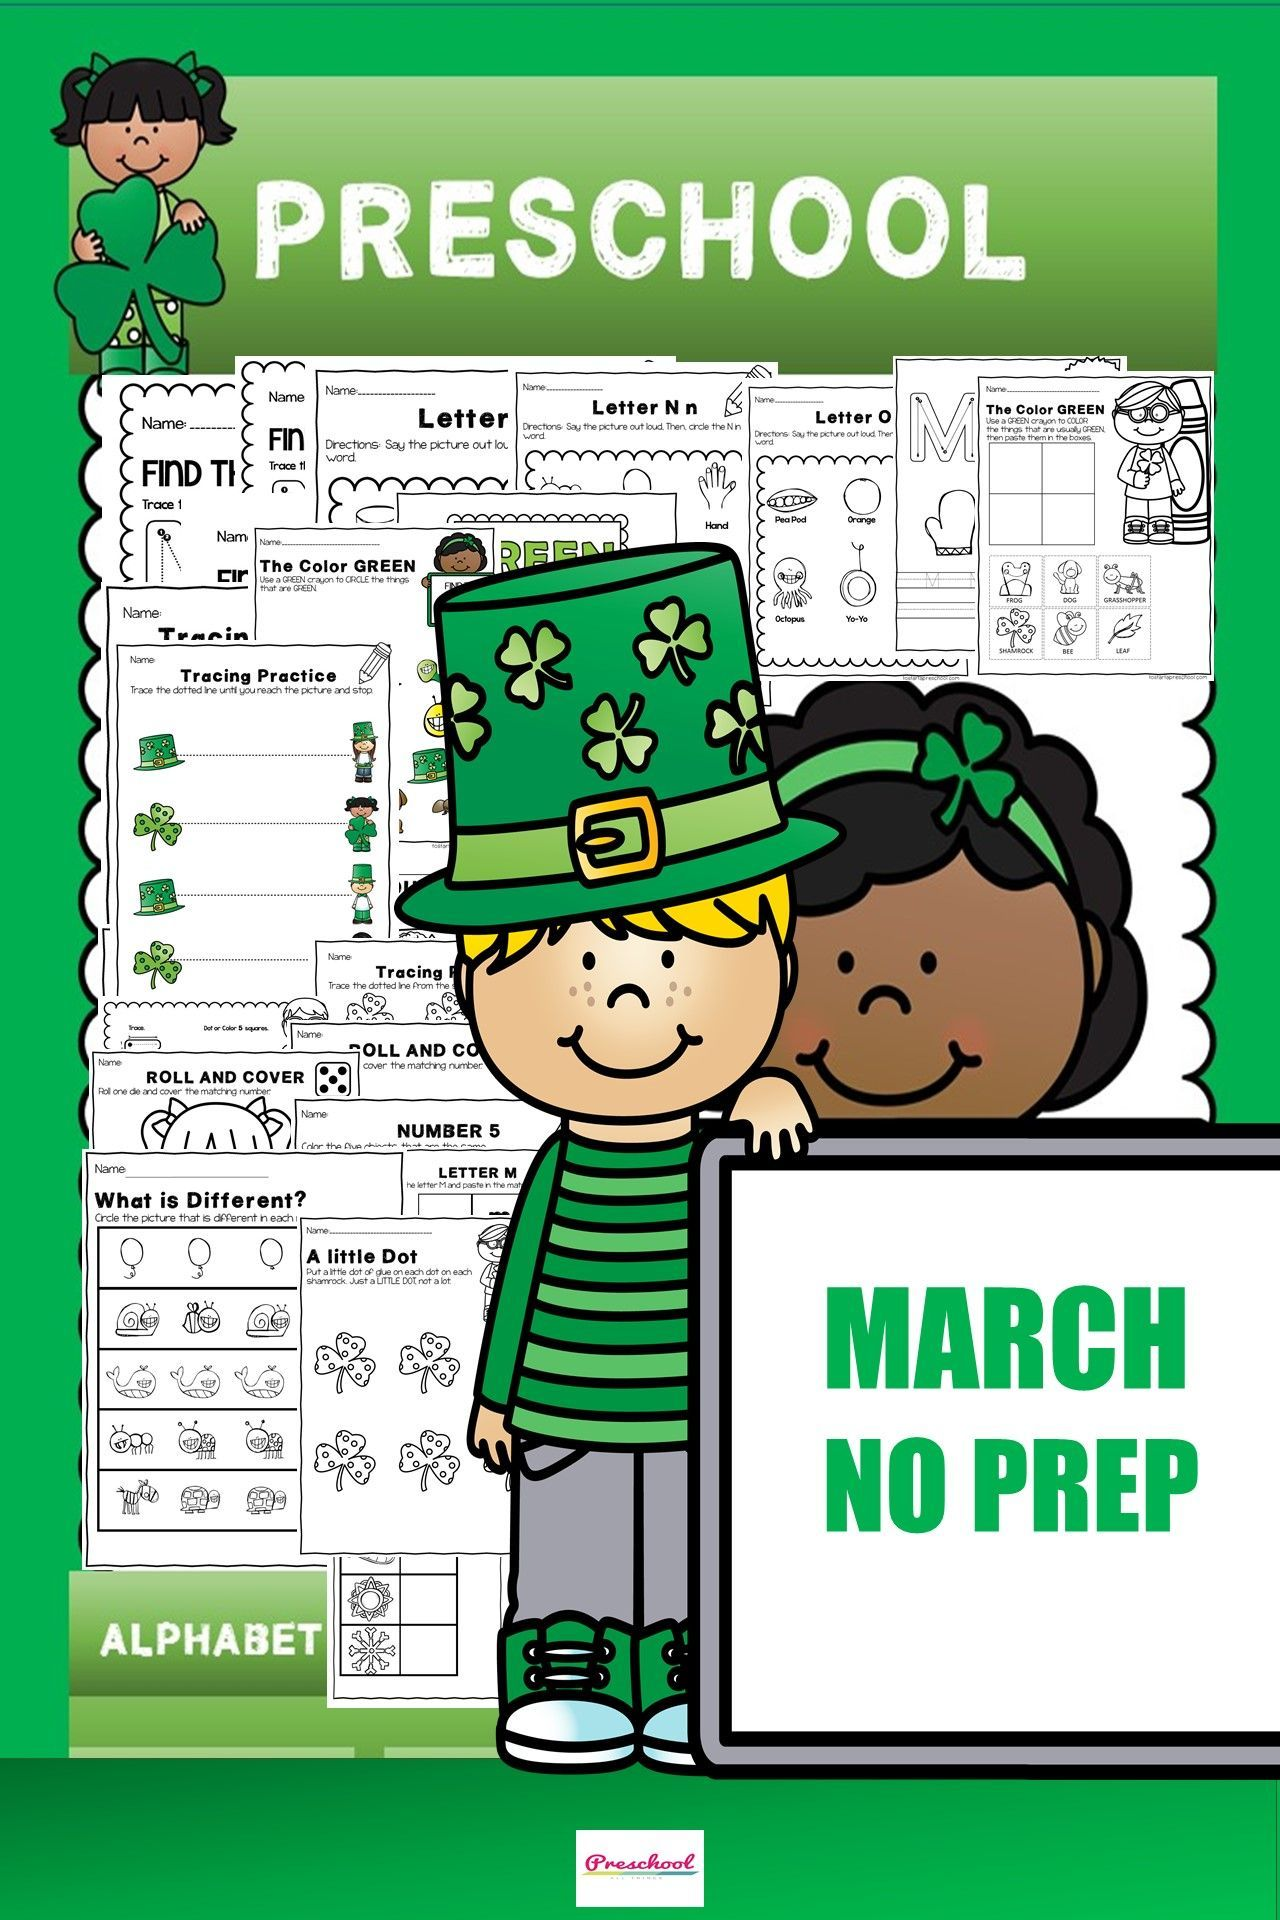 Are You Looking For Fun March Theme Activities For Your